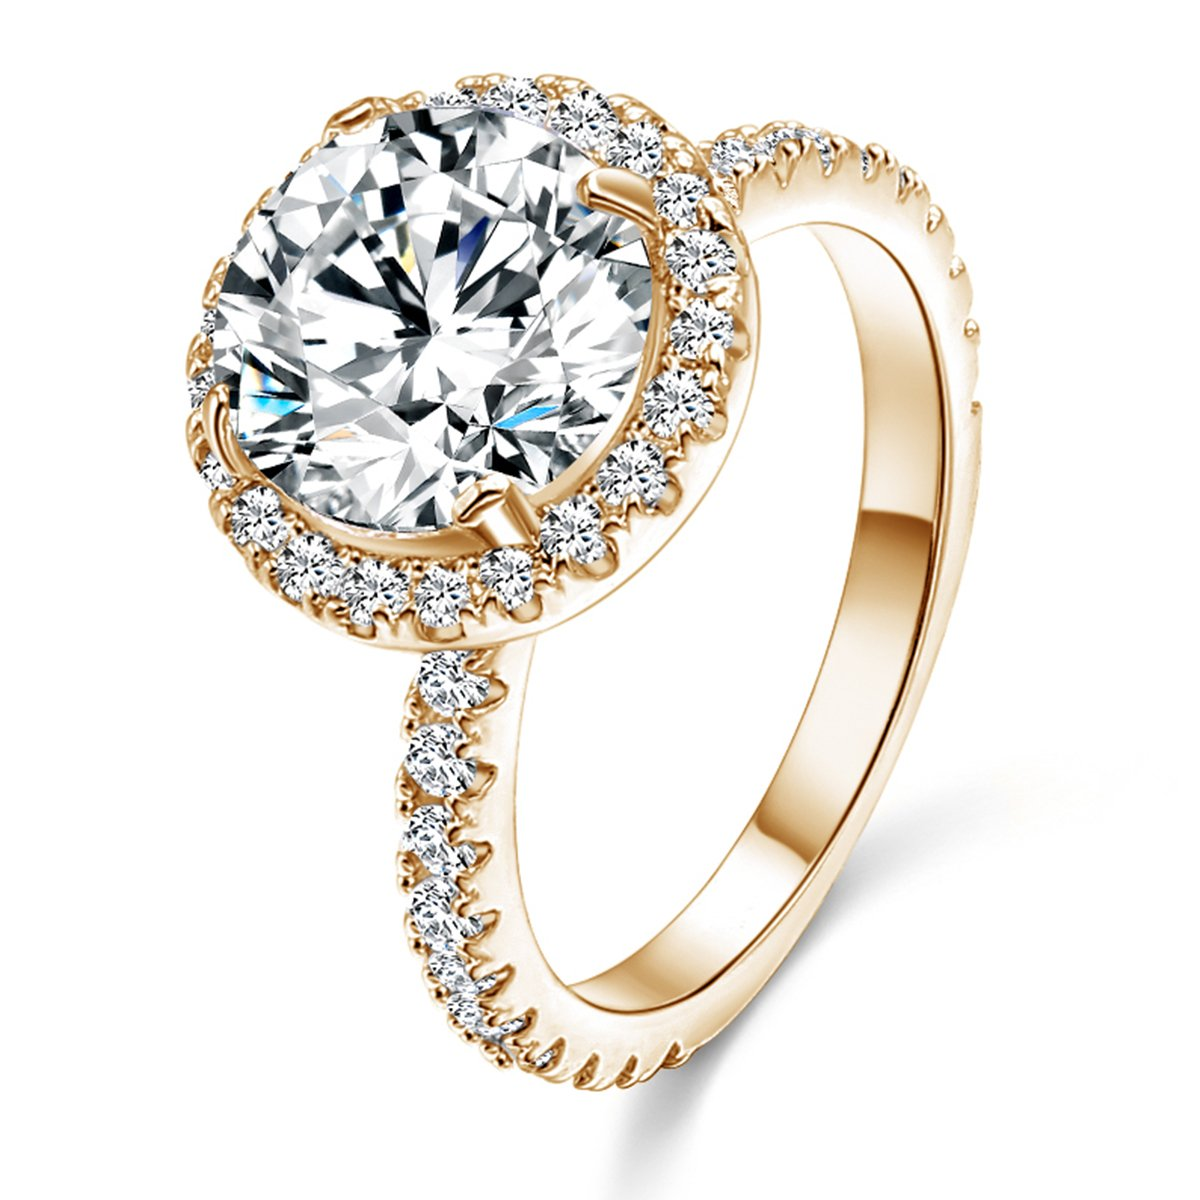 Jiangyue Halo Big Stone Rings For Women AAA Cubic Zirconia Champagne Gold Plated Sparkling Brilliant Ring Party Wedding Jewelry Size 10